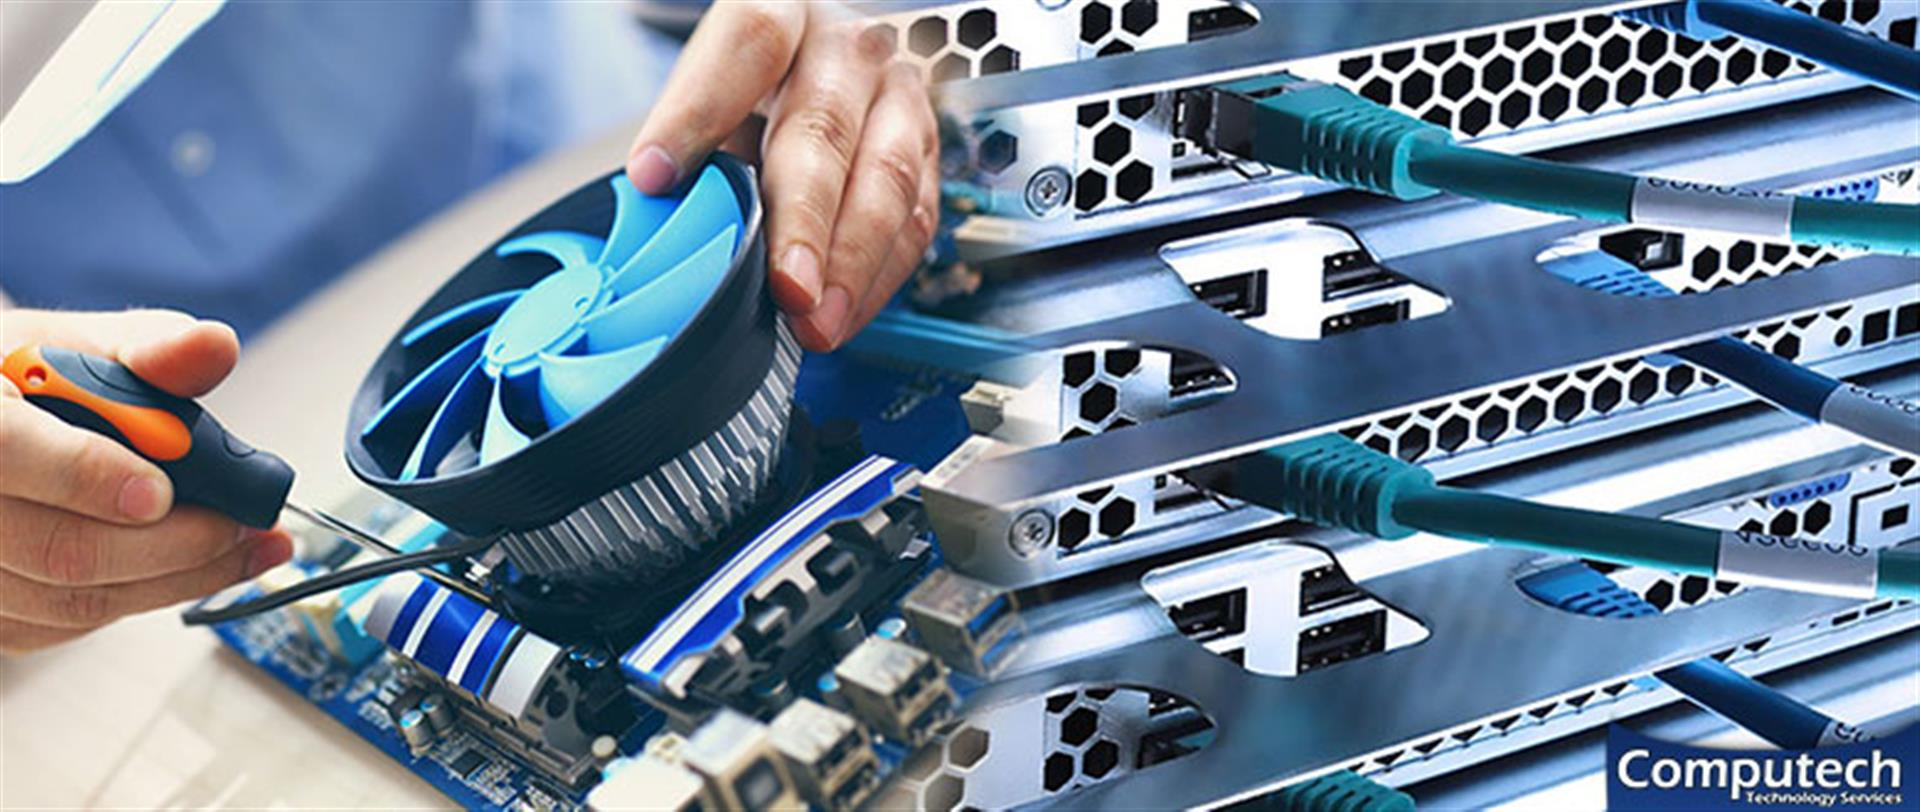 Richmond Hill Georgia On-Site Computer & Printer Repairs, Networks, Voice & Data Cabling Services